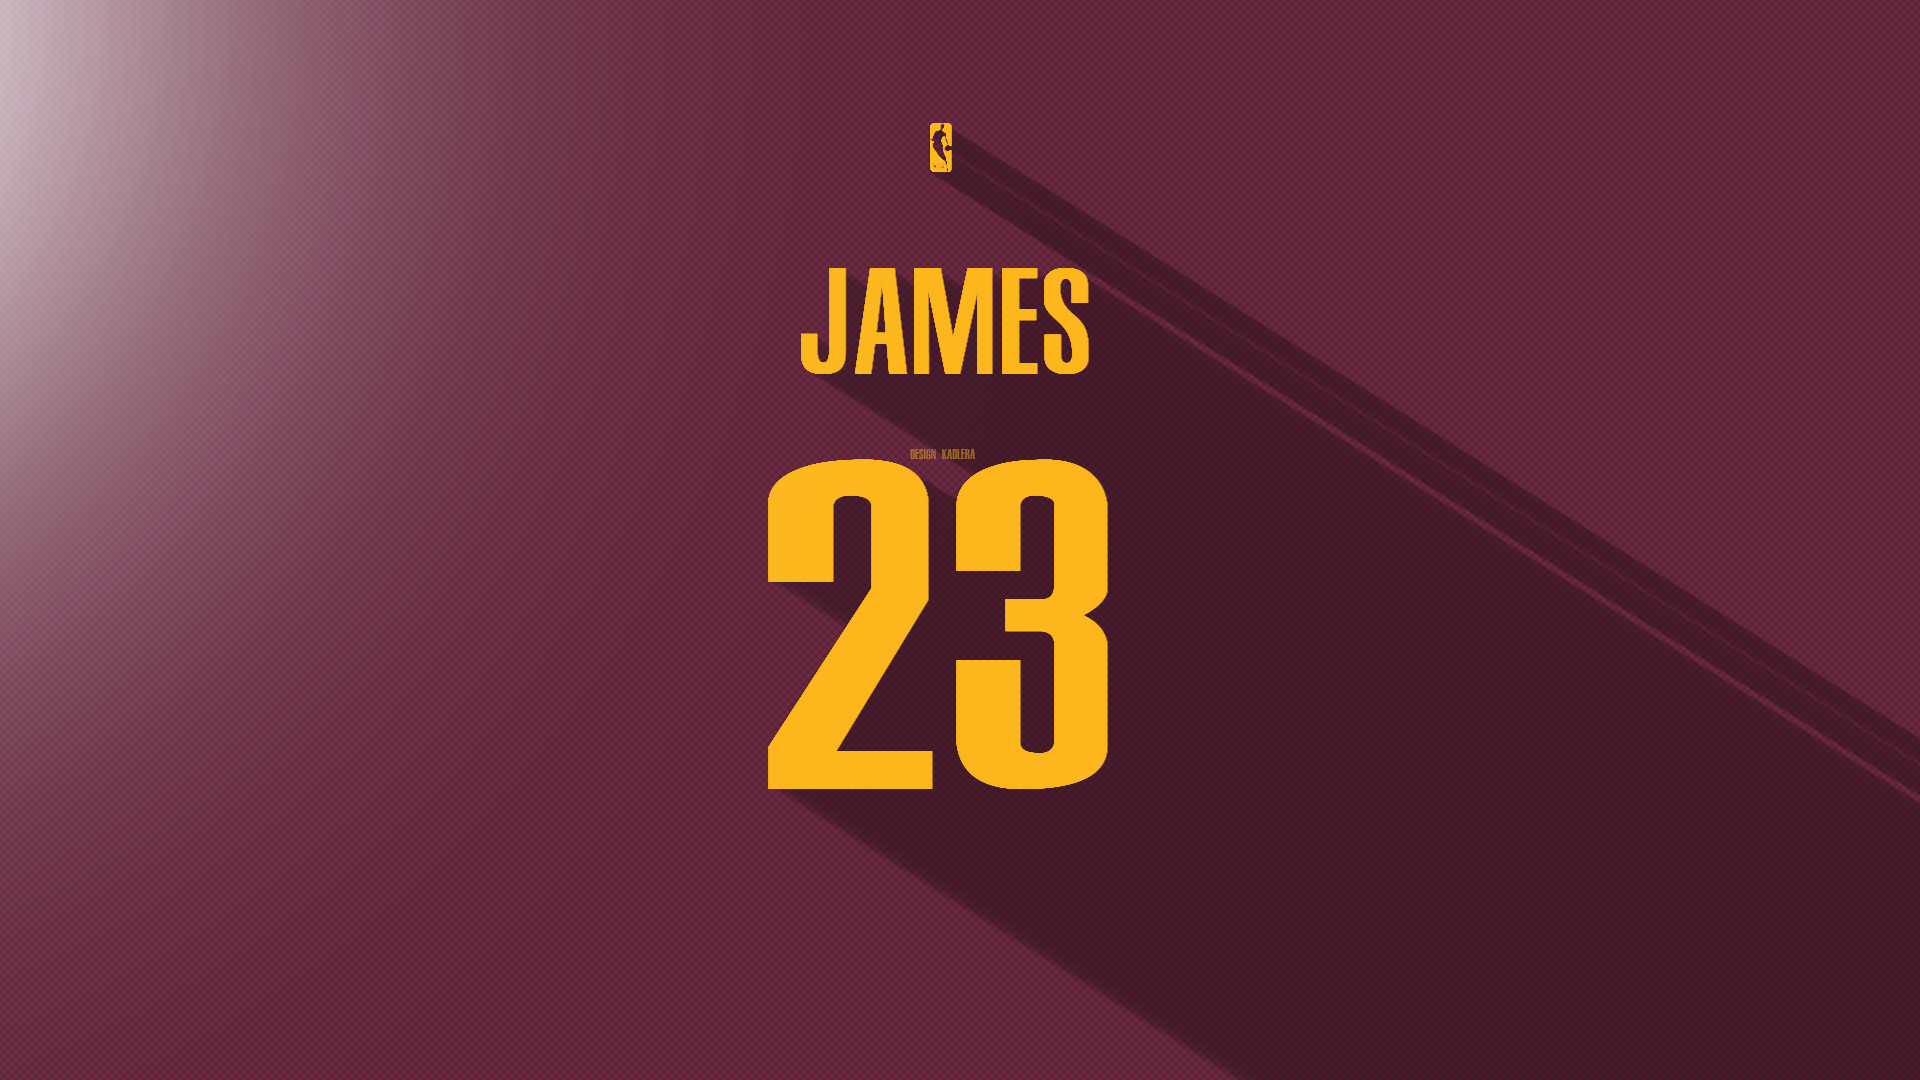 1920x1080  Lebron James Long shadow wallpaper by DesignKadlera Lebron James  Long shadow wallpaper by DesignKadlera